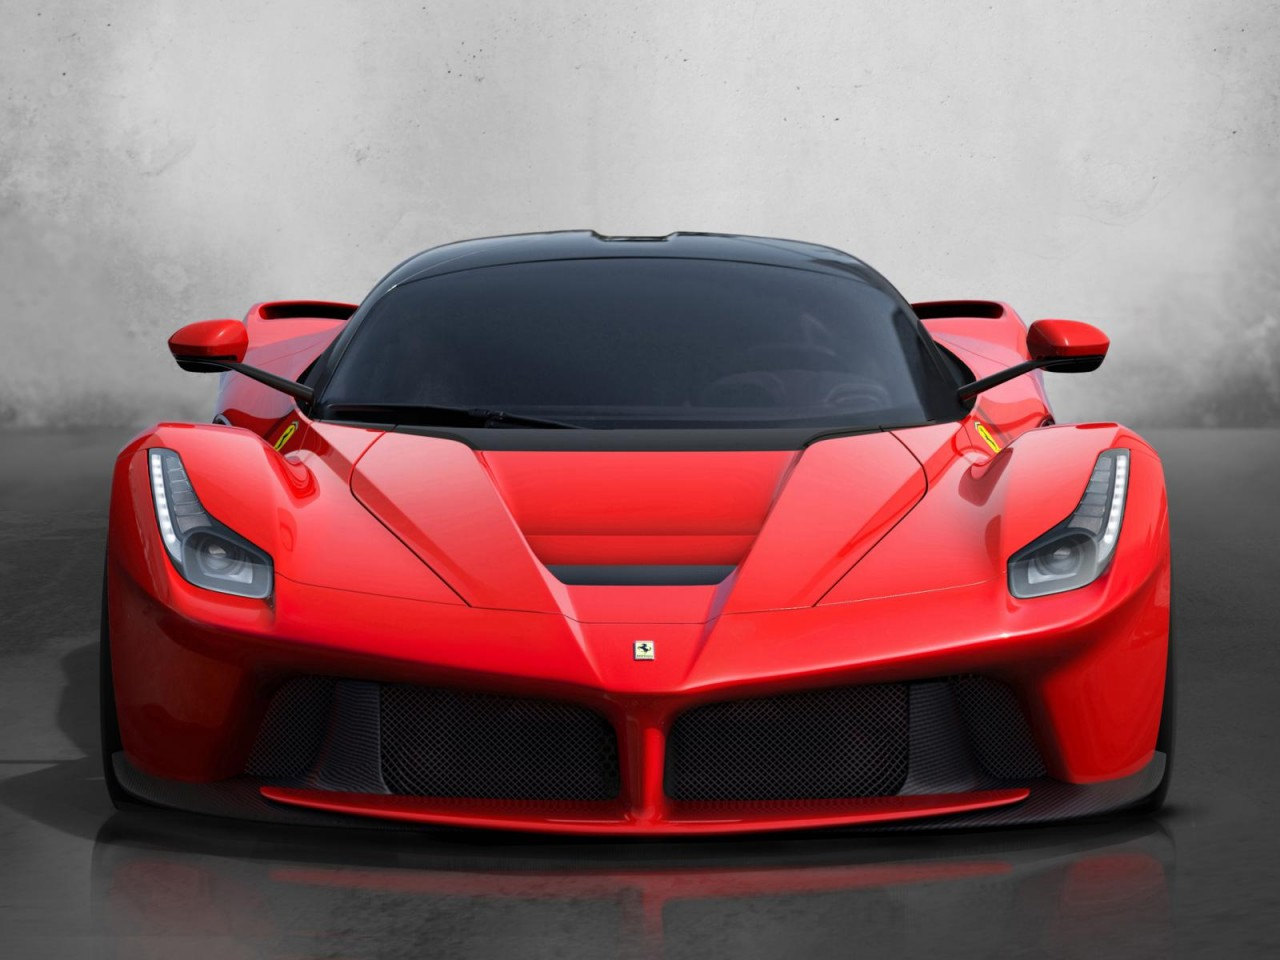 2013 ferrari f70 red image collections hd cars wallpaper 2013 ferrari f70 red gallery hd cars wallpaper 2013 ferrari f70 red images hd cars wallpaper vanachro Choice Image